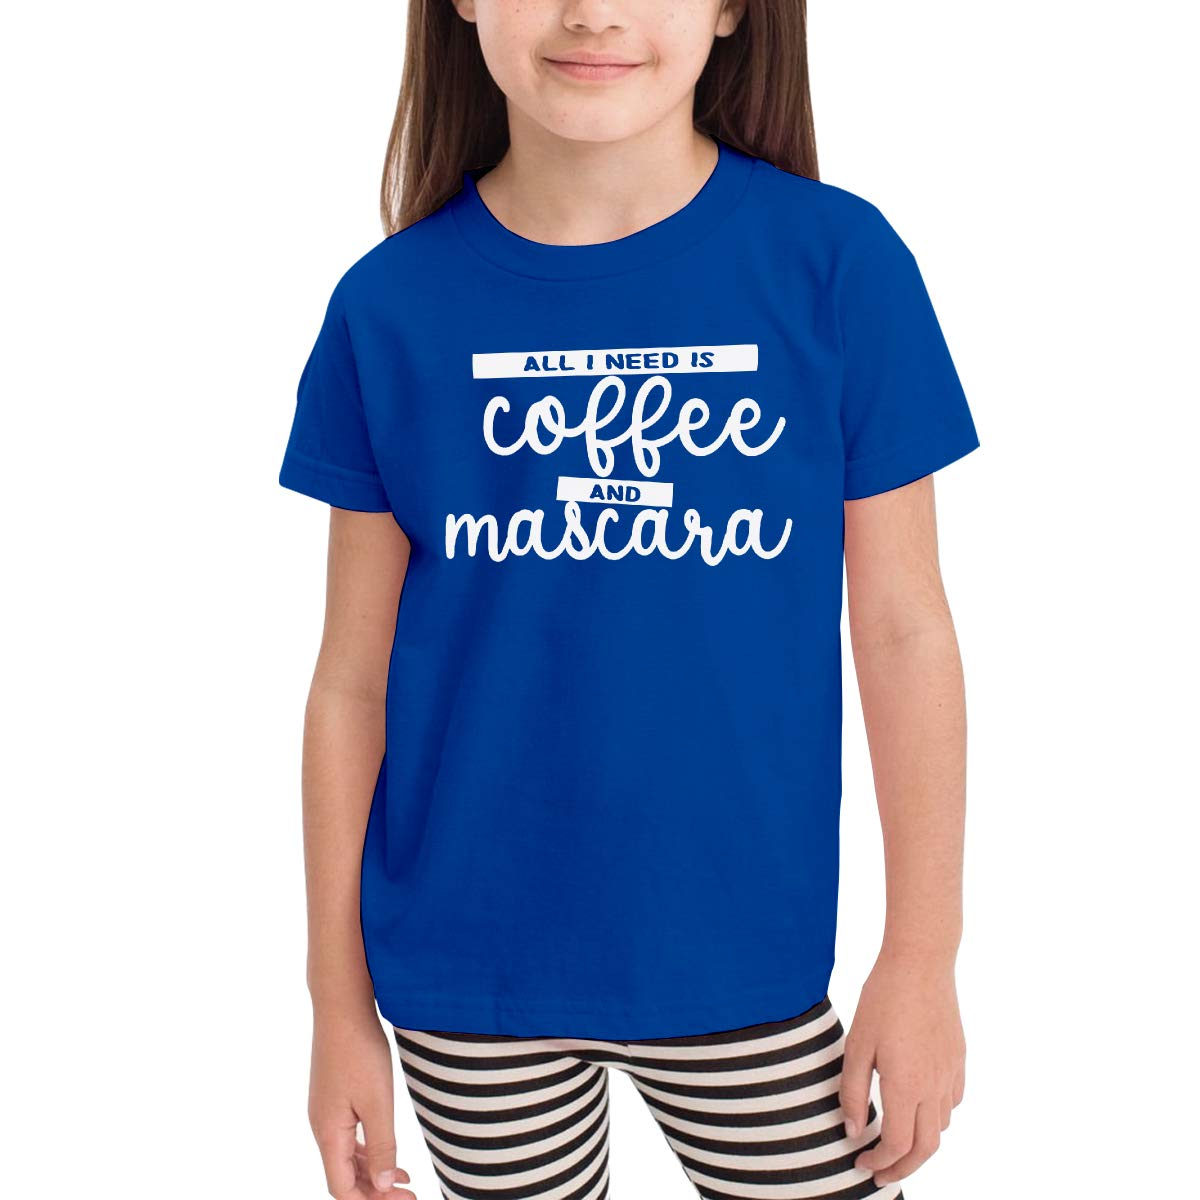 All I Need is Coffee and Mascara Childrens Cotton Blue Short Sleeve Girls Tee Shirt